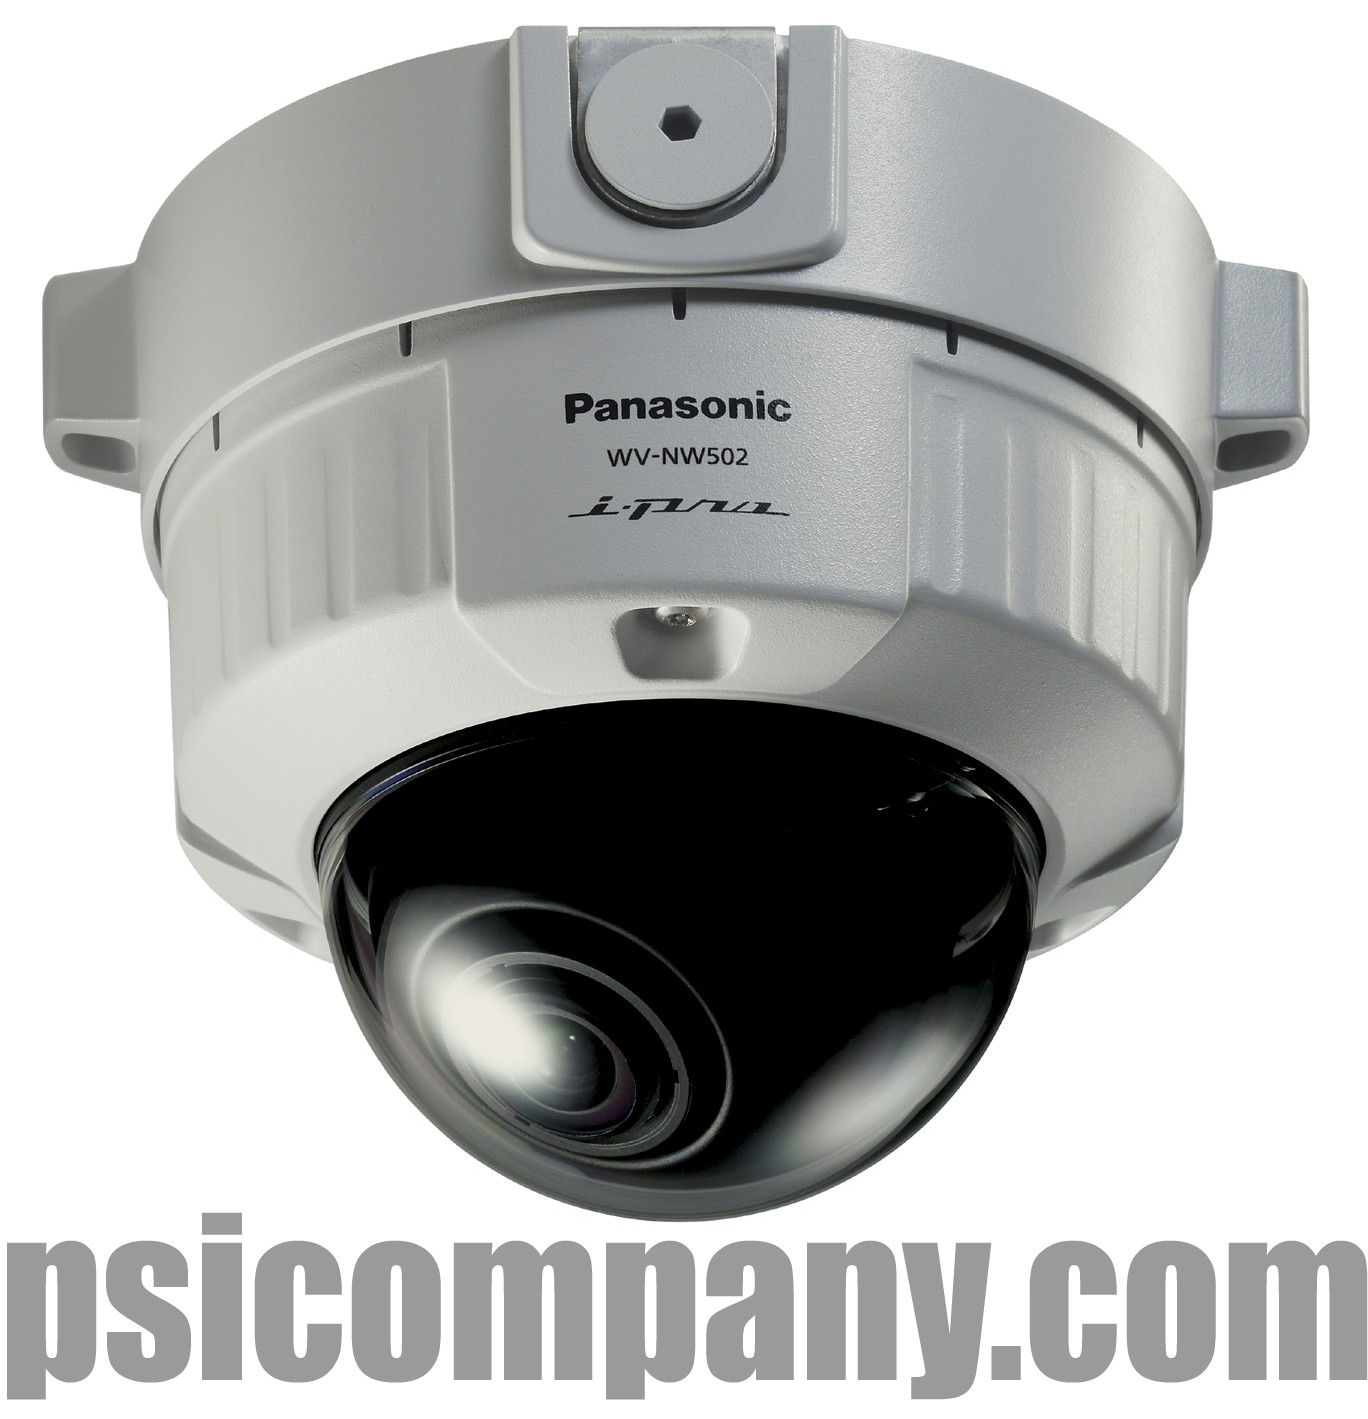 Panasonic Wv Nw502s Network Camera Dome Super Dynamic Megapixel Ptz Wiring Diagram Discontinued